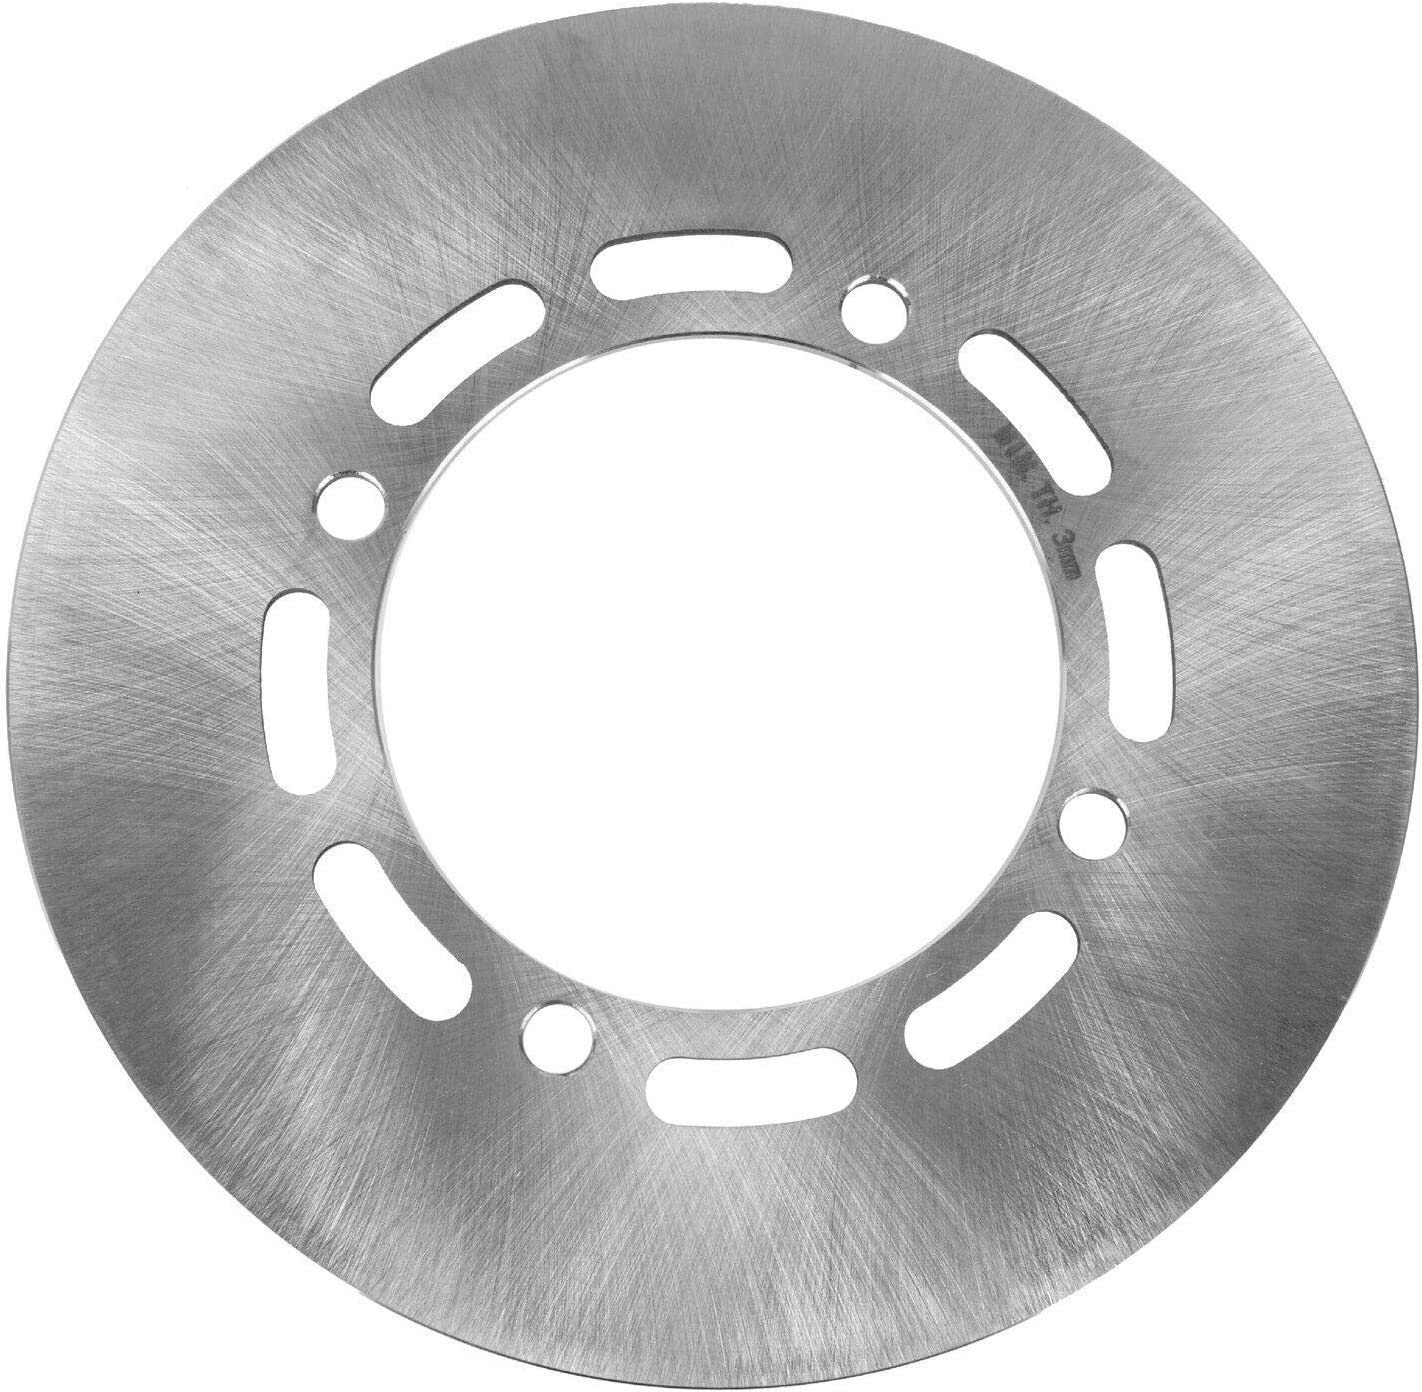 2021 new Caltric Front Brake Disc Rotor Grizzly Compatible low-pricing Yamaha 66 with